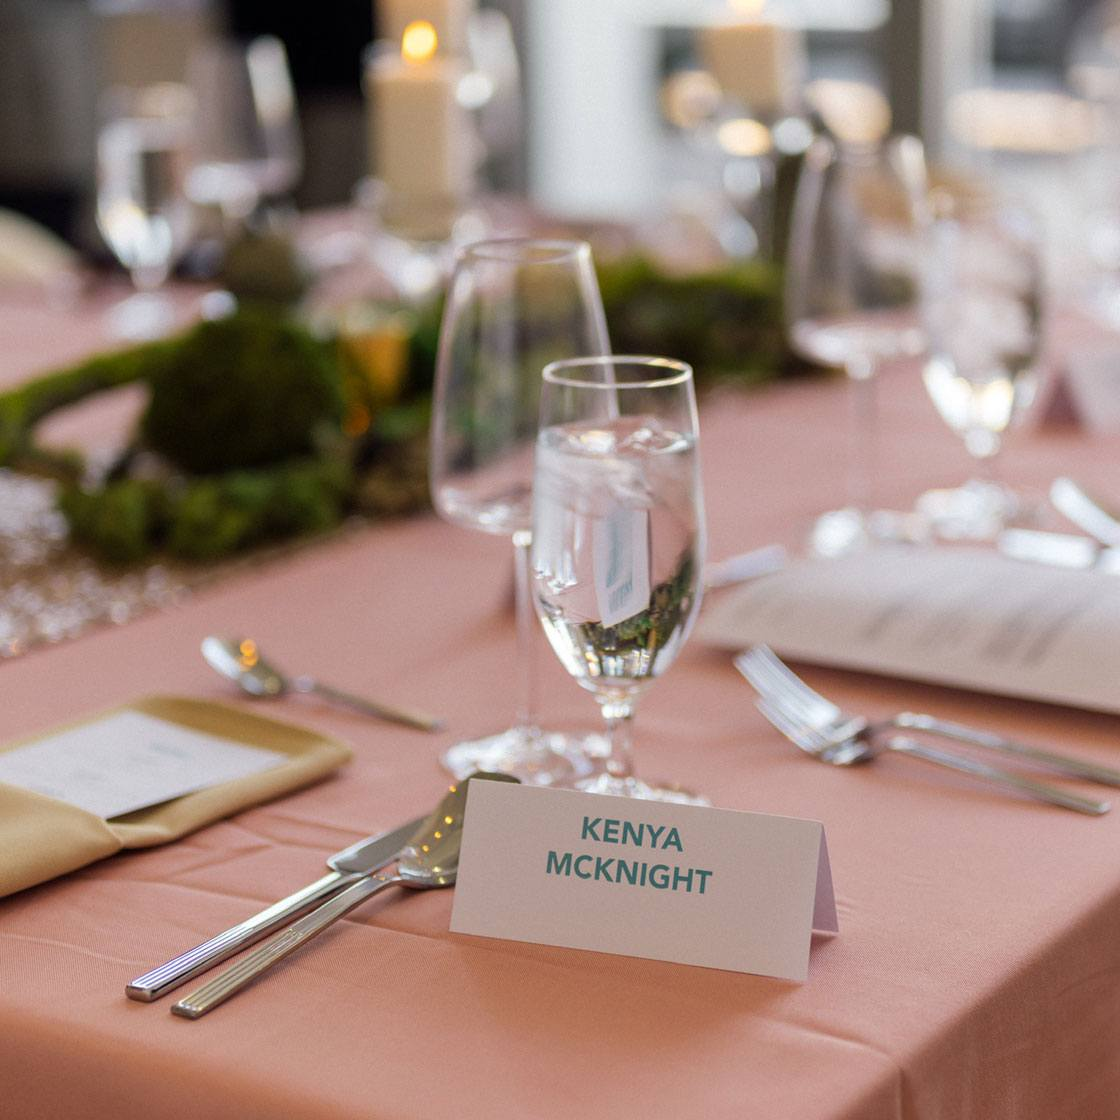 A table setting with the place name Kenya McKnight